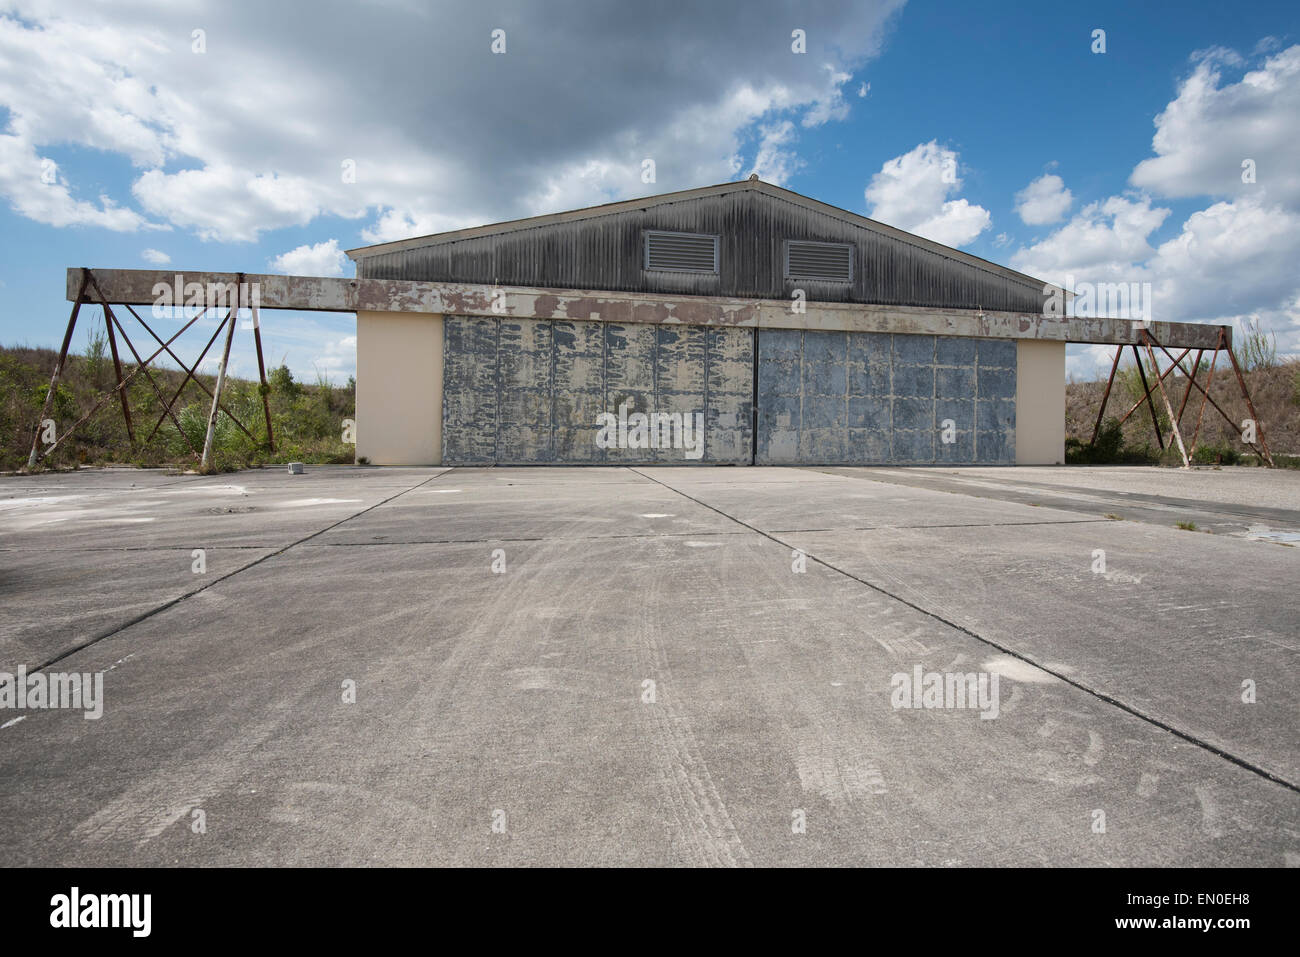 One of the three missile storage sheds that housed nike nuclear missiles during the cuban missile crisis - Stock Image